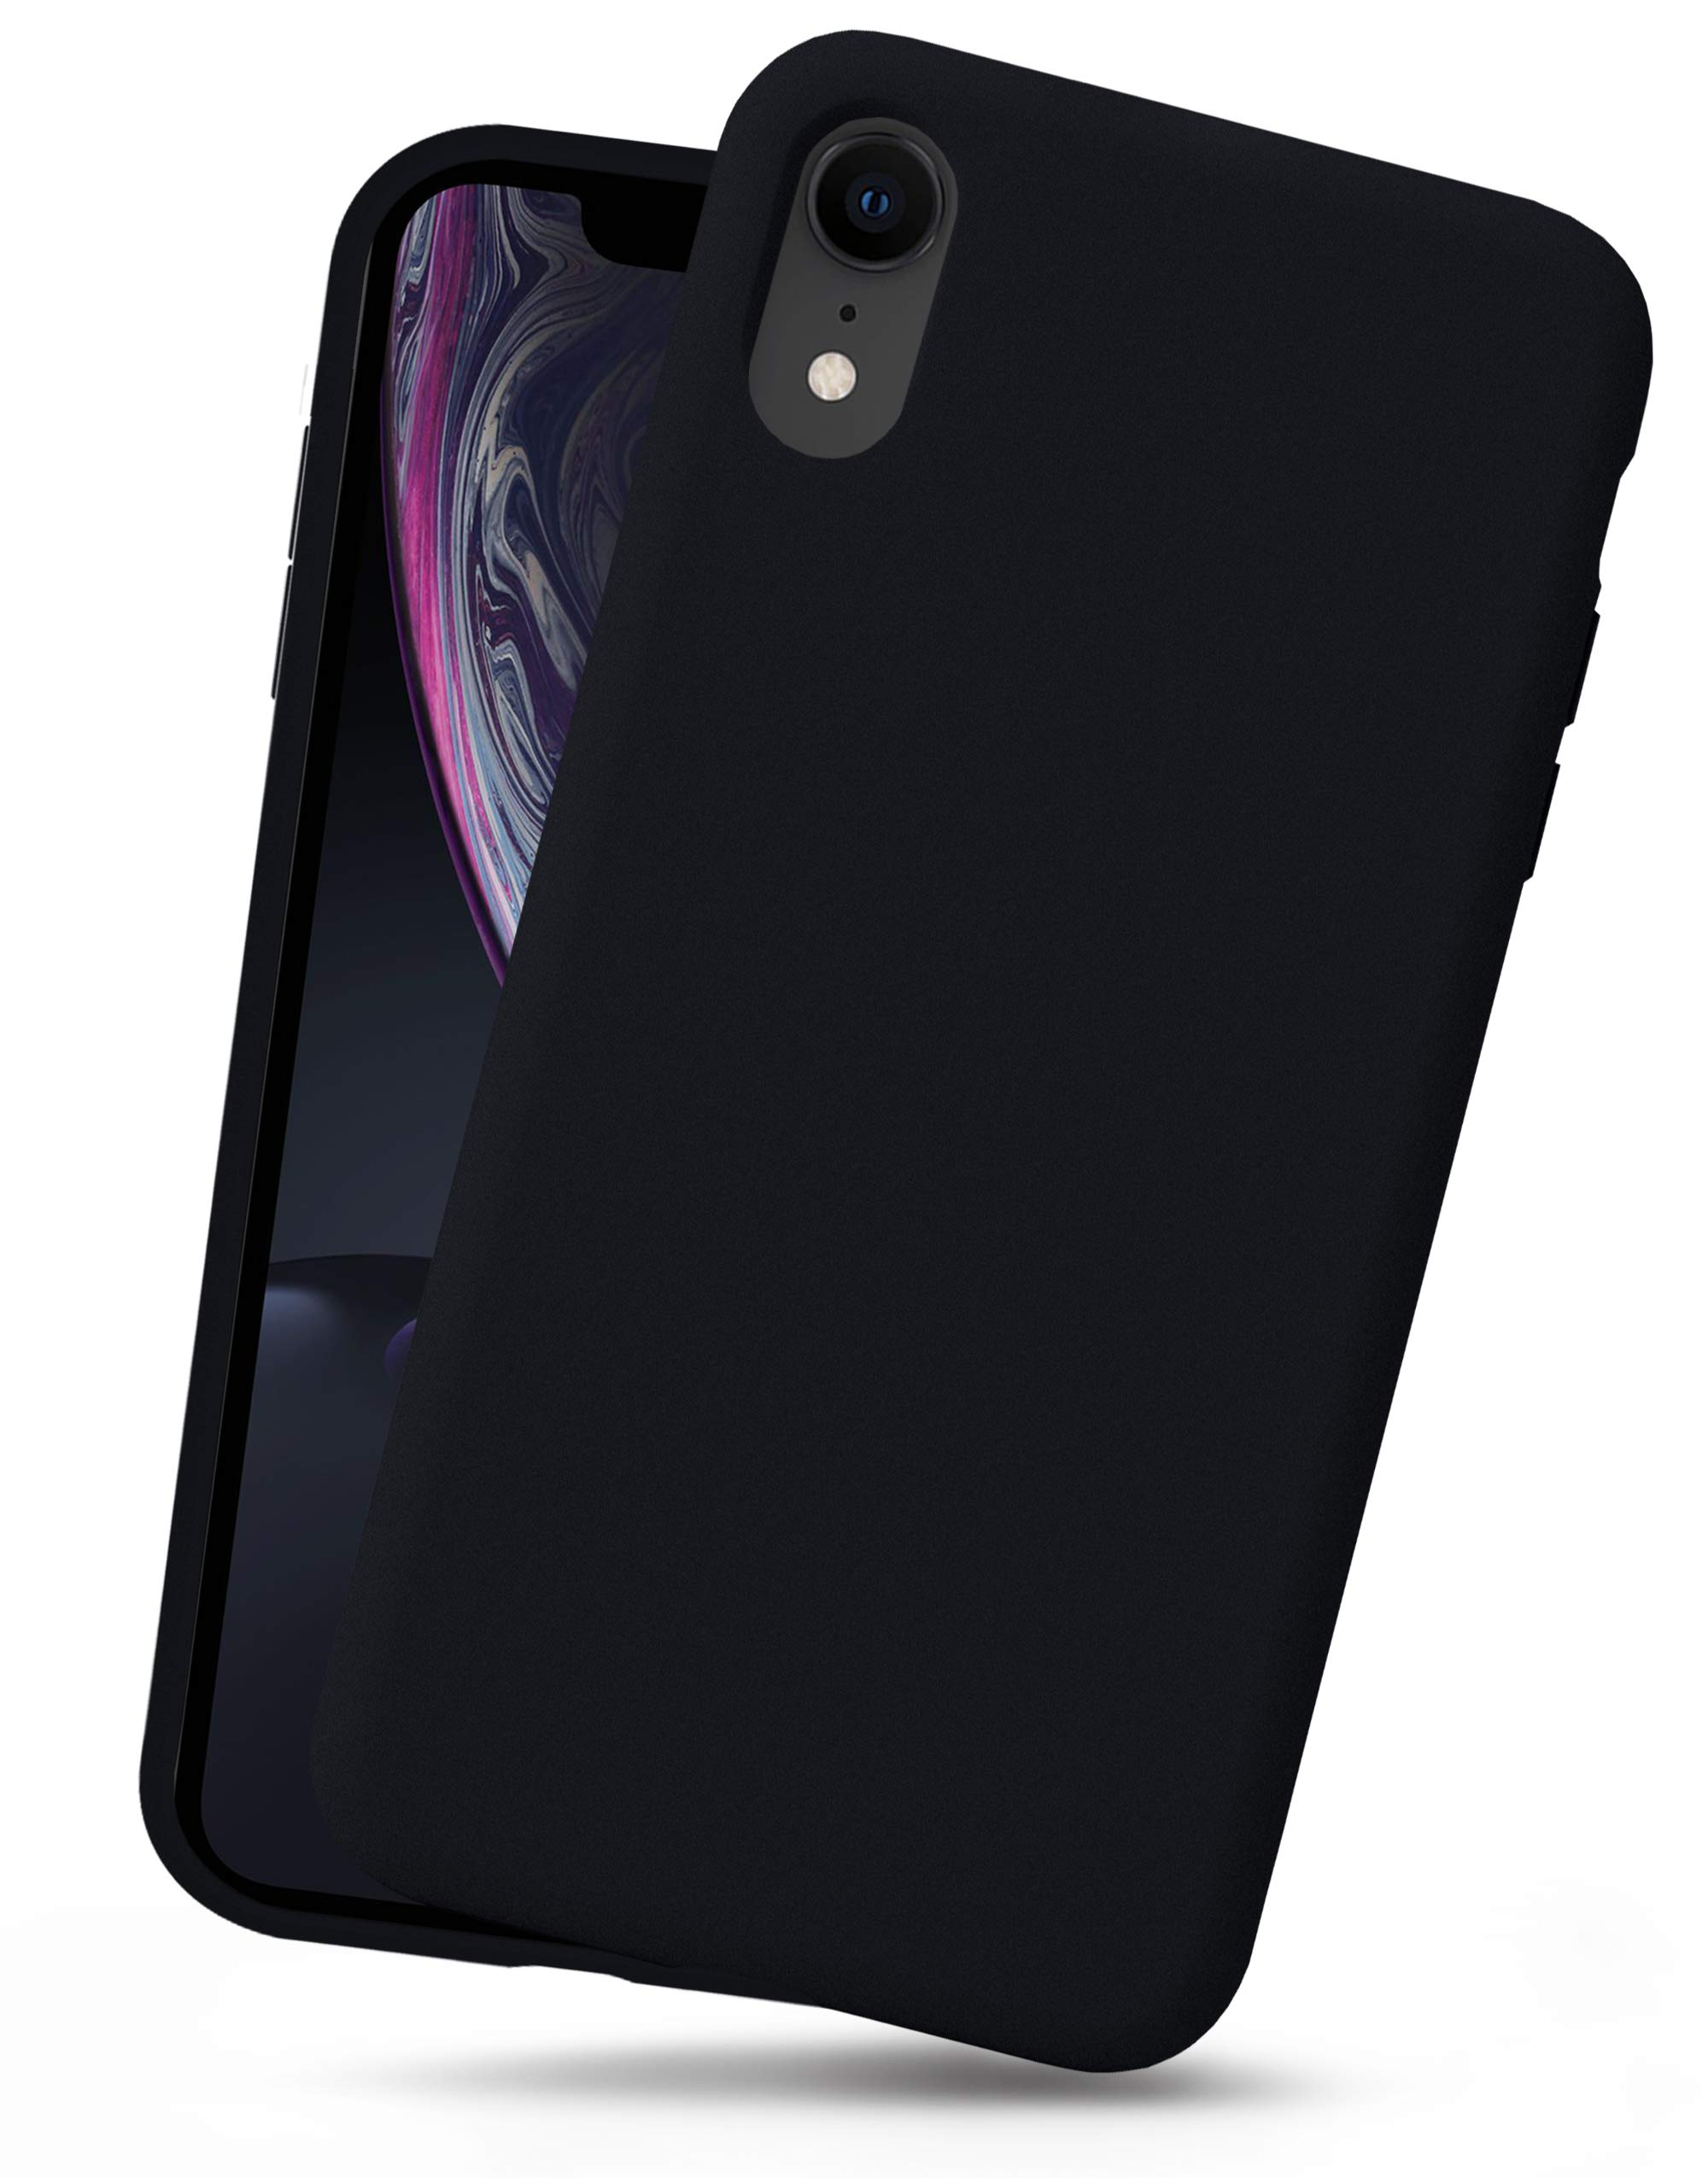 OCOMMO iPhone XR Silicone Case, Full Body Shockproof Protective Liquid Silicone XR Cases with Soft Microfiber Lining, Wireless Charge Pad Compatible, Black